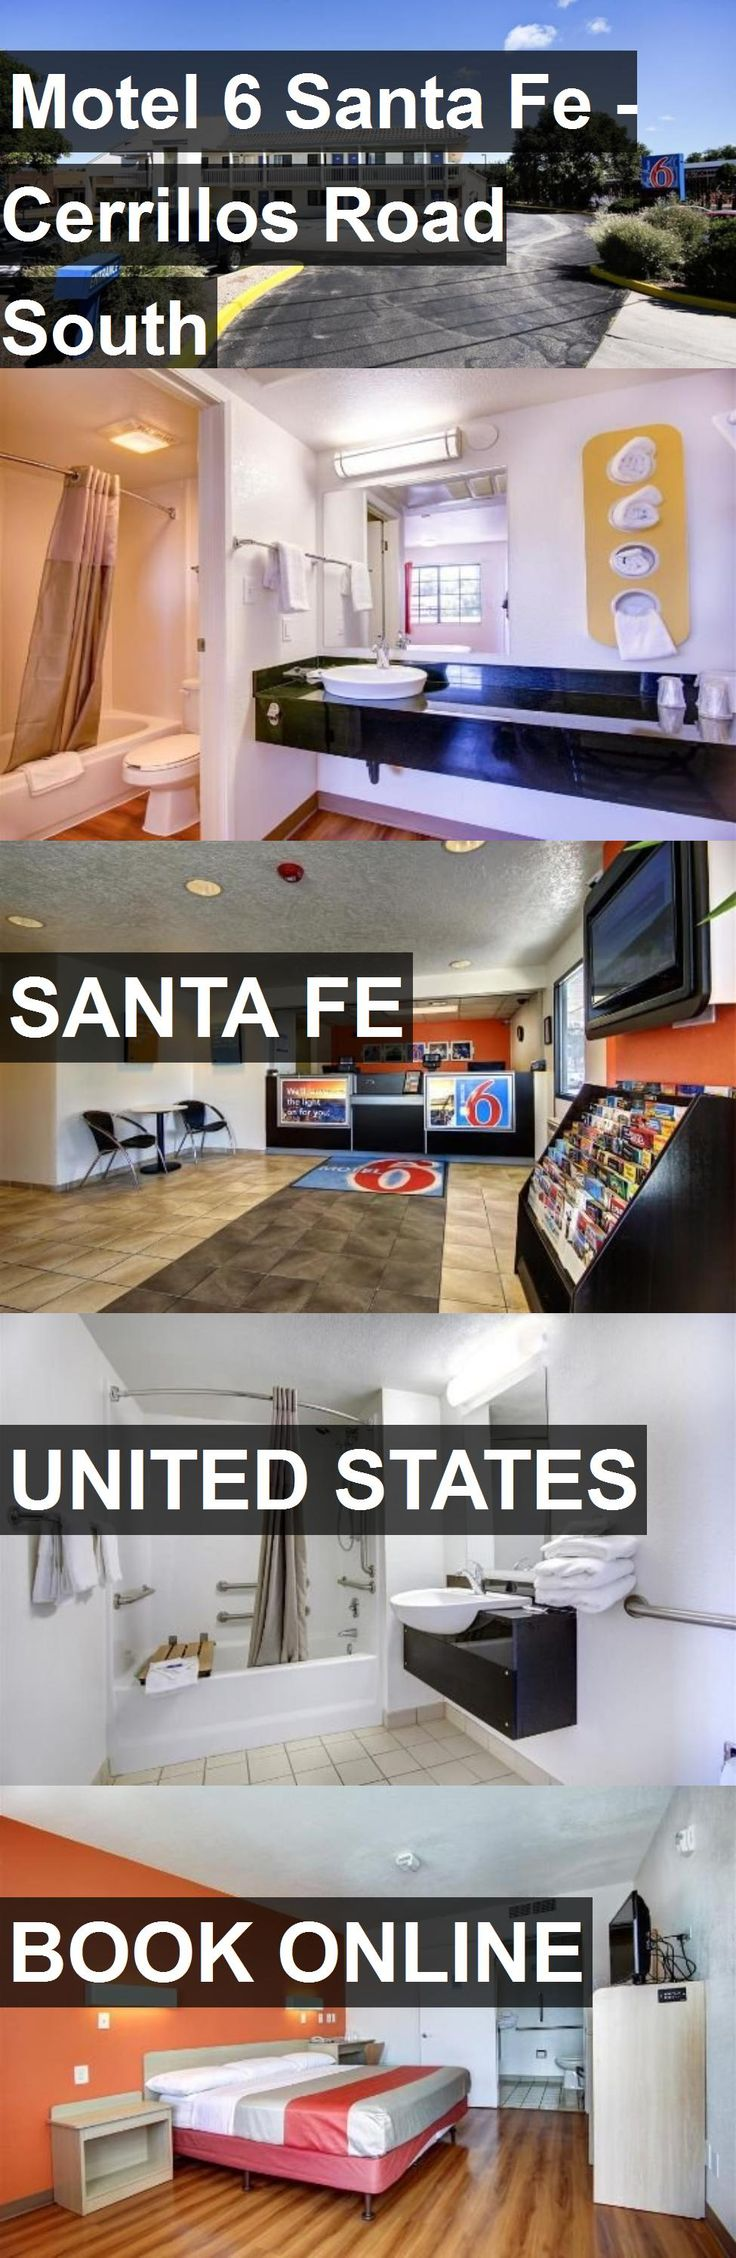 Hotel Motel 6 Santa Fe - Cerrillos Road South in Santa Fe, United States. For more information, photos, reviews and best prices please follow the link. #UnitedStates #SantaFe #travel #vacation #hotel